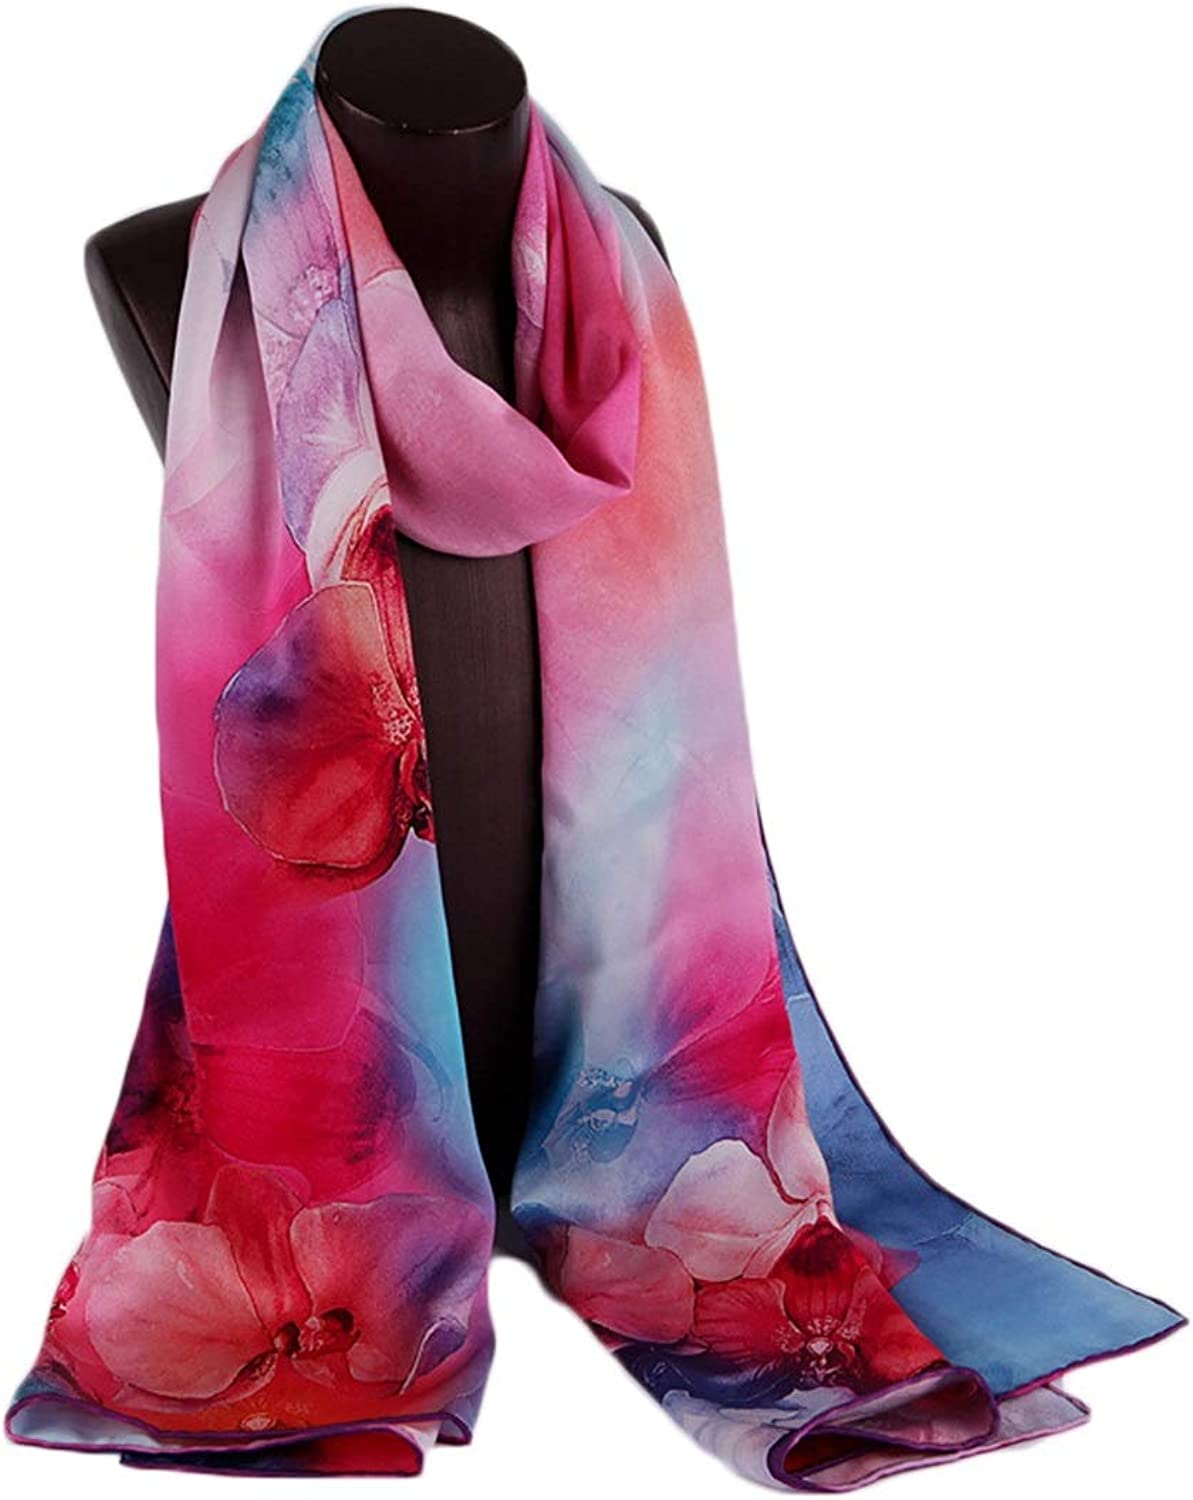 CEFULTY Spring and Summer Shawl Gradient color Towel Watercolor Painting Silk Beach Towel (color   Pink, Size   175x52CM)